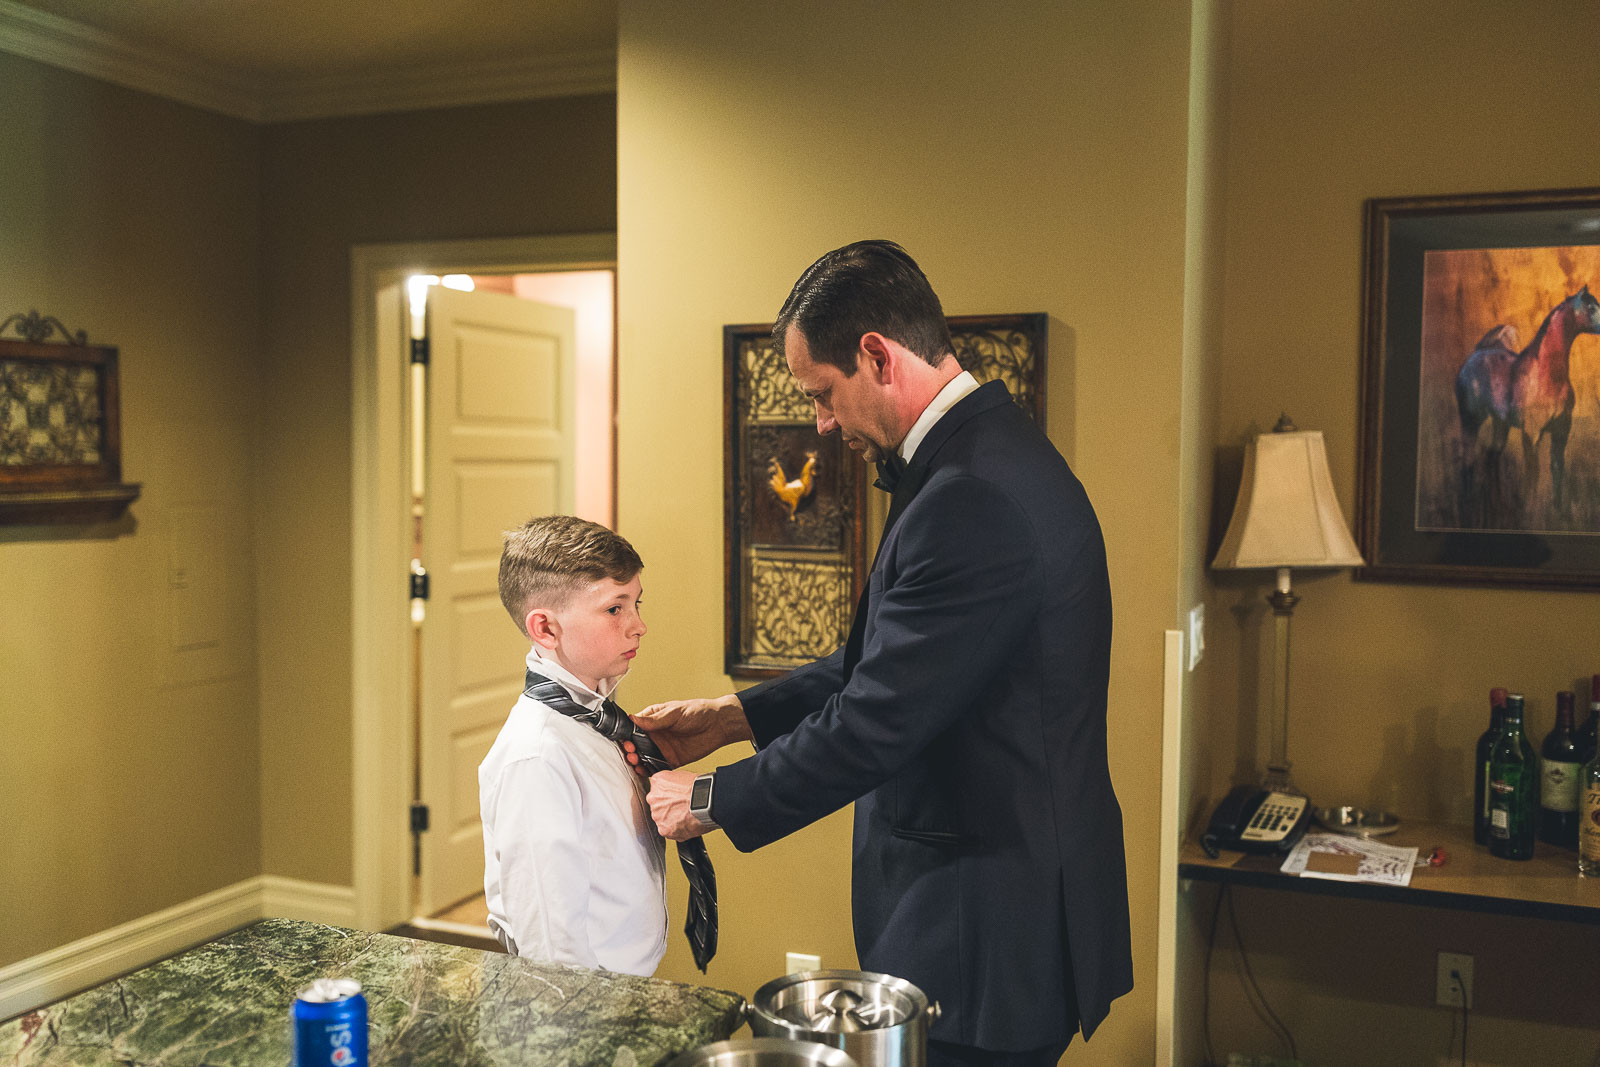 Groom helping young one with tie